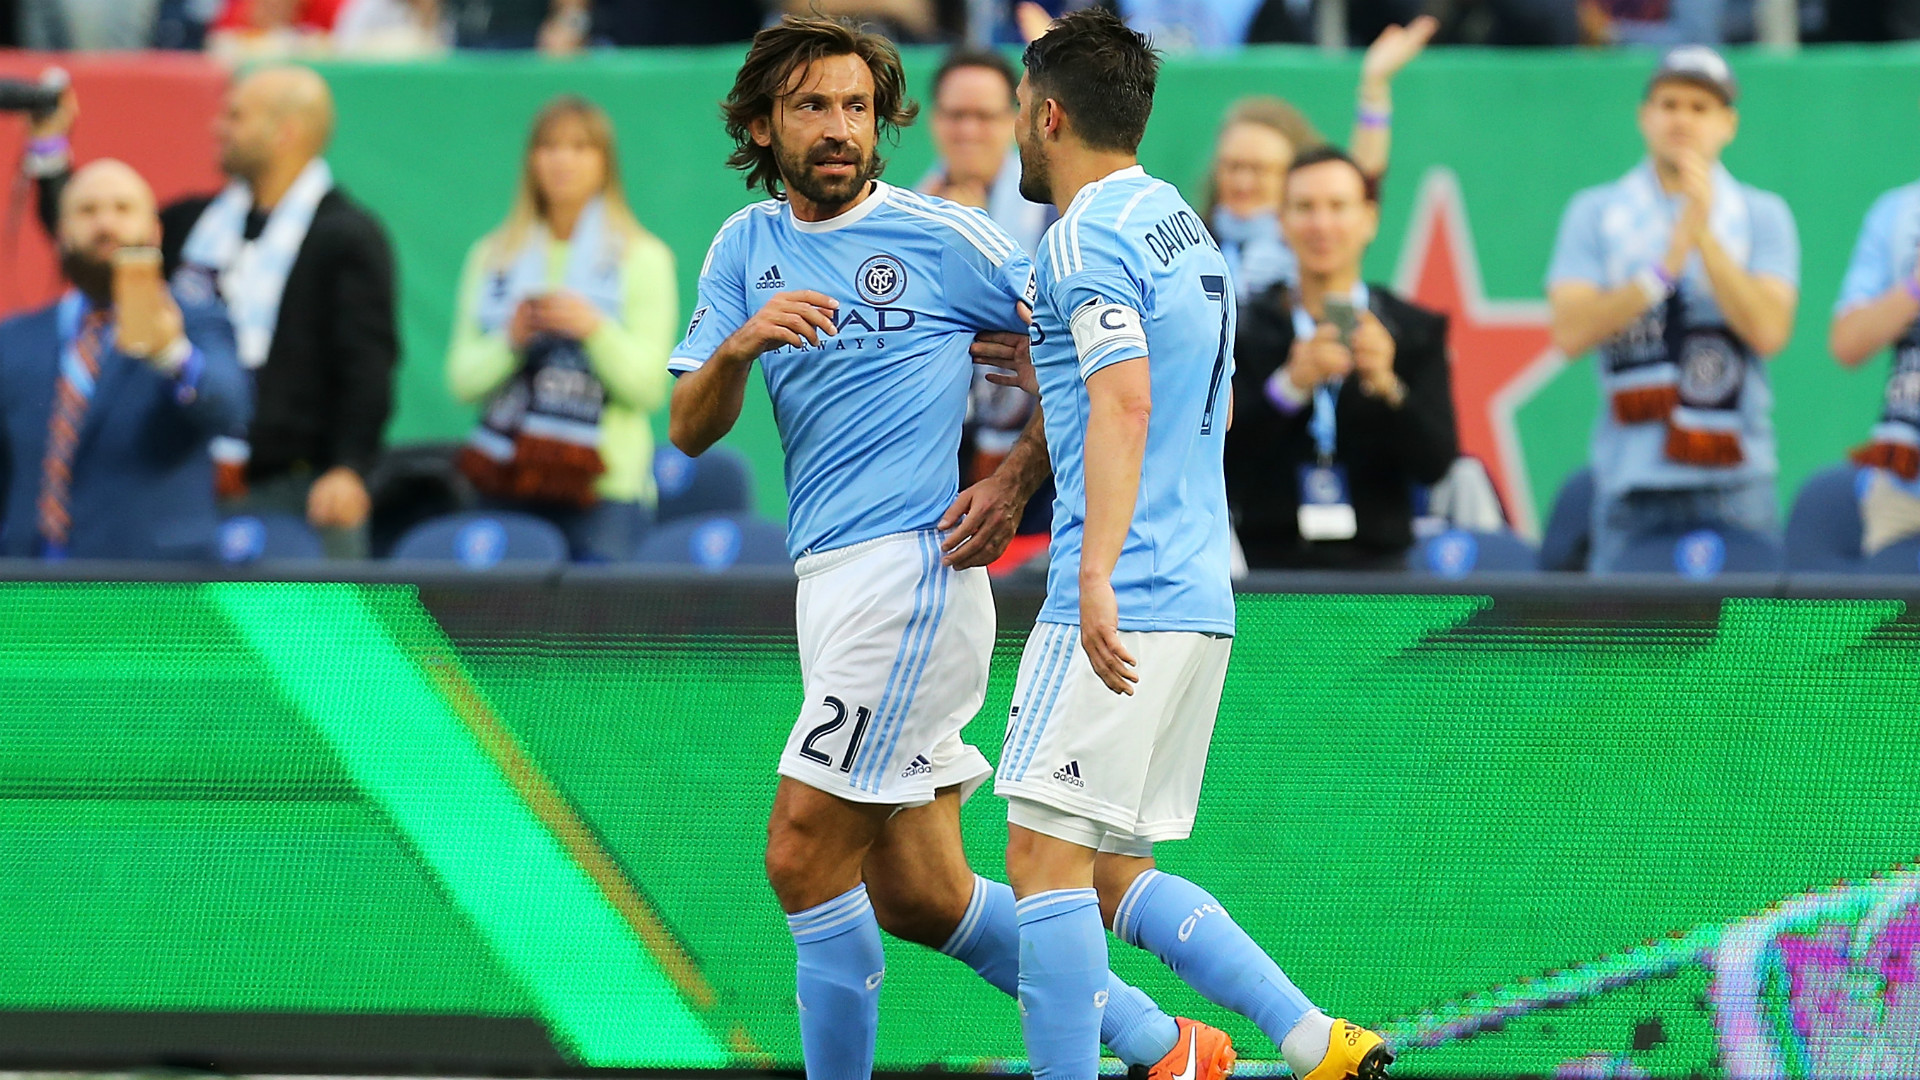 David Villa scores wonder goal as NYCFC beat the Philadelphia Union